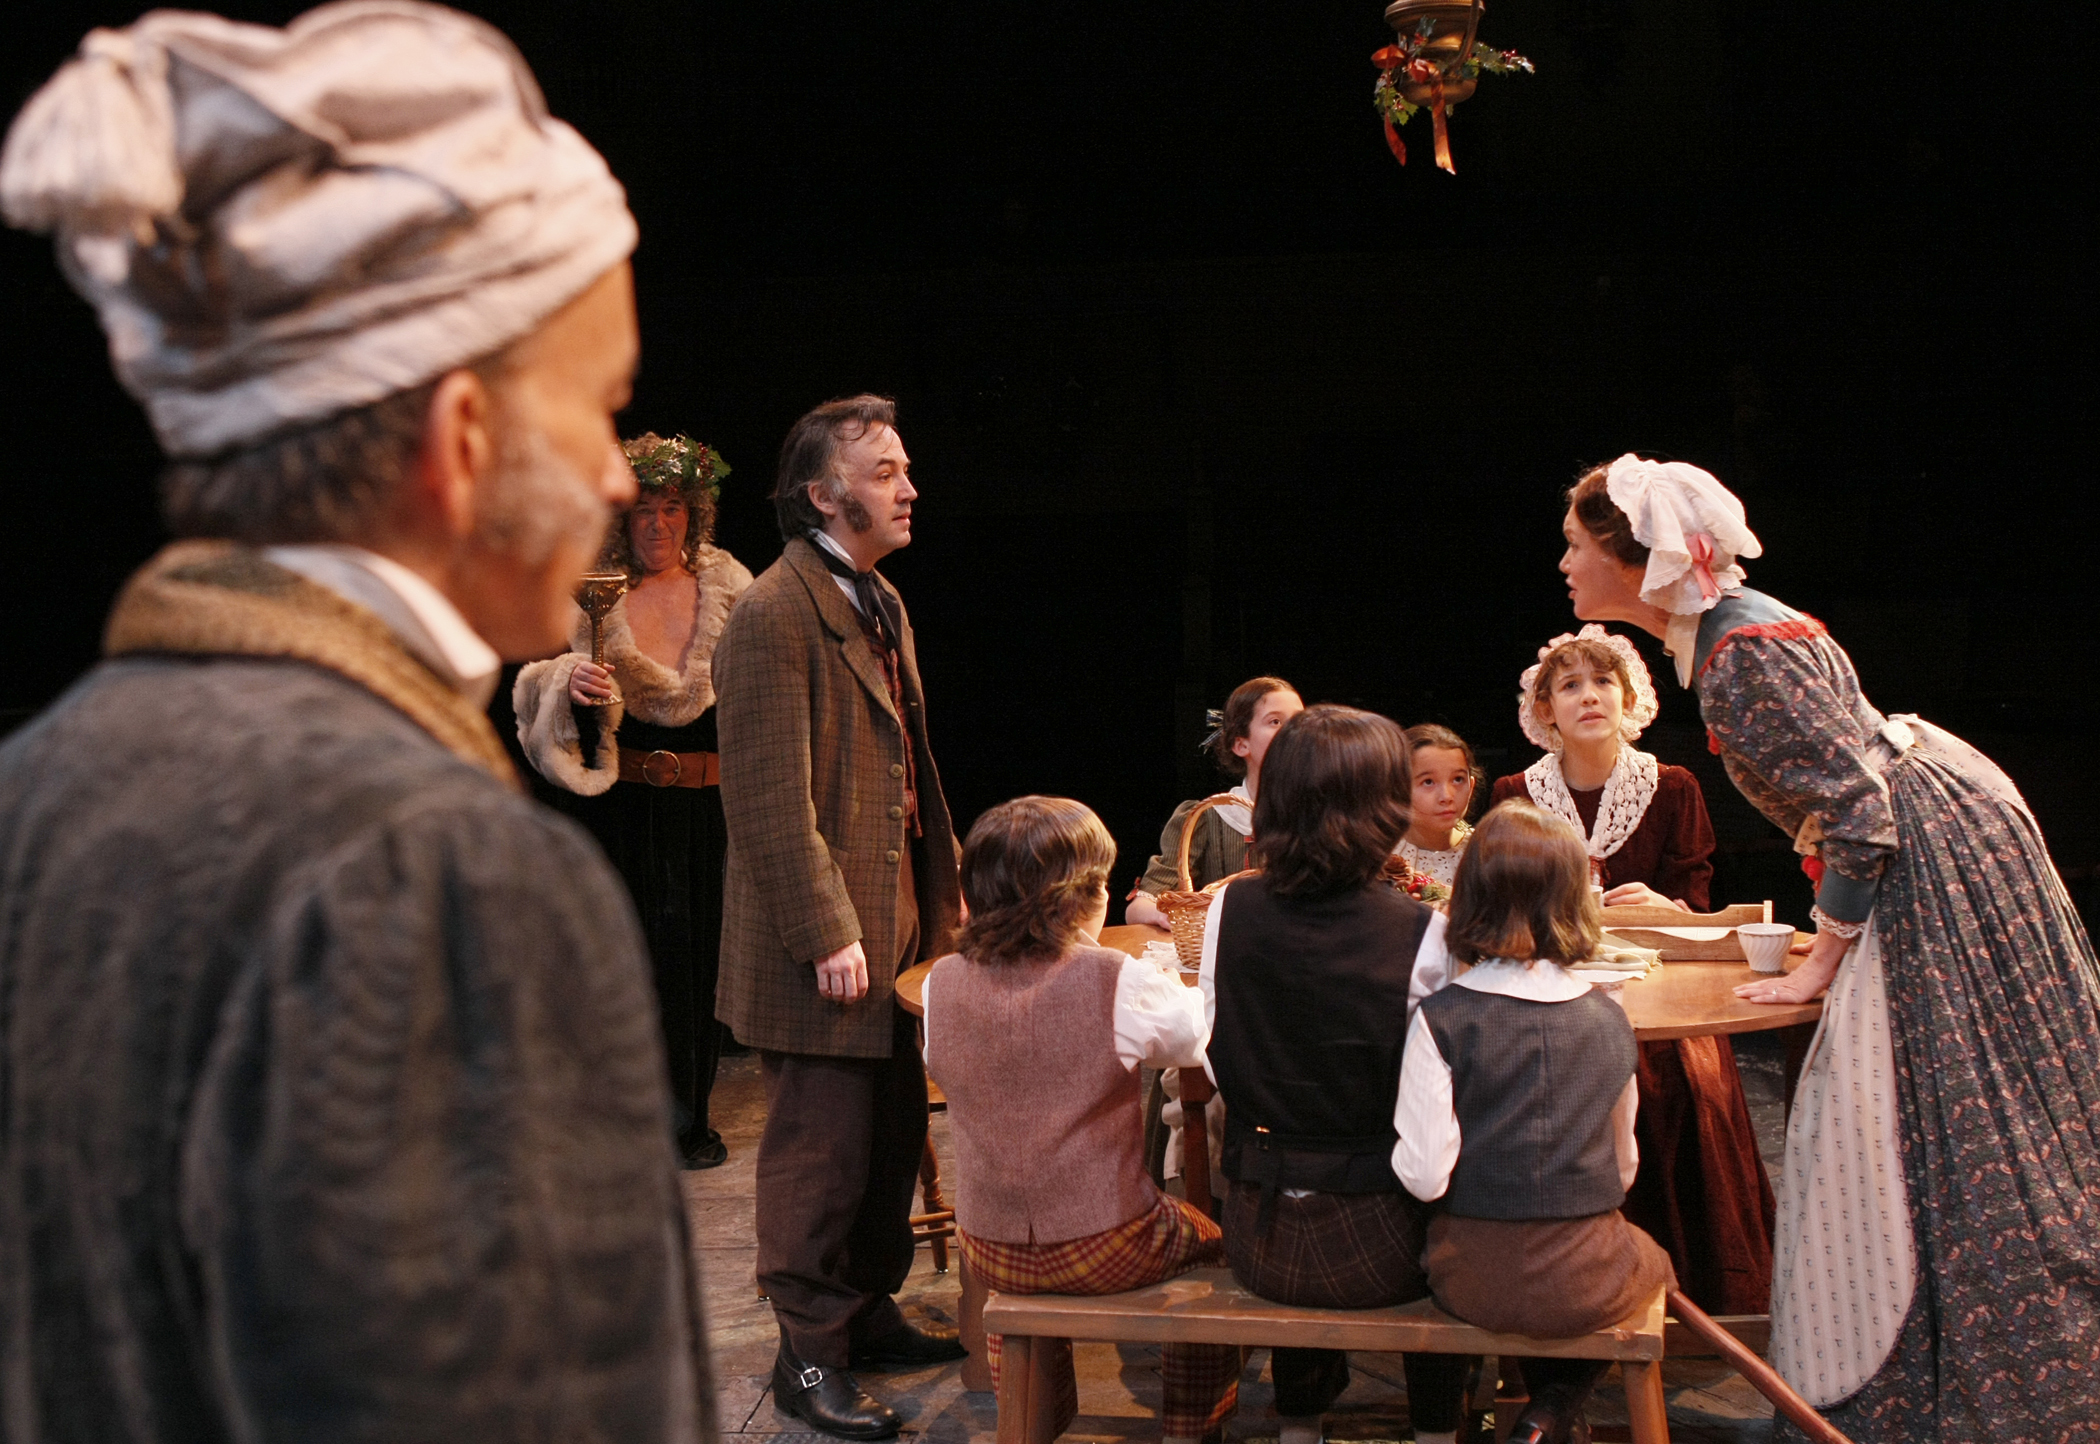 The Spirit Of Christmas Cast.David Pichette As Scrooge Richard Ziman As Spirit 2 And